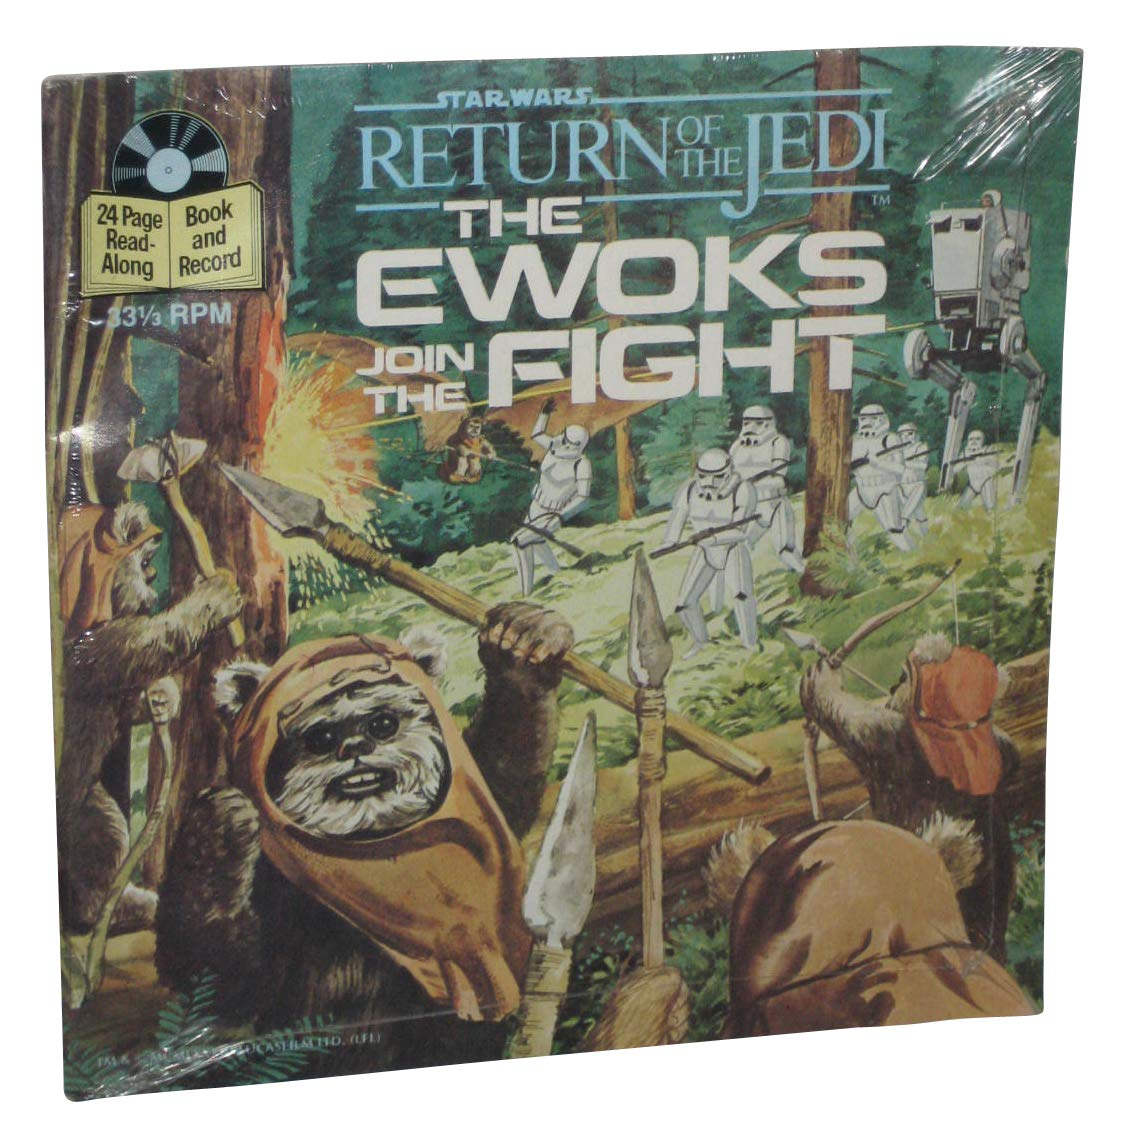 Star Wars Return of the Jedi: The Ewoks Join the Fight (Book & Record)